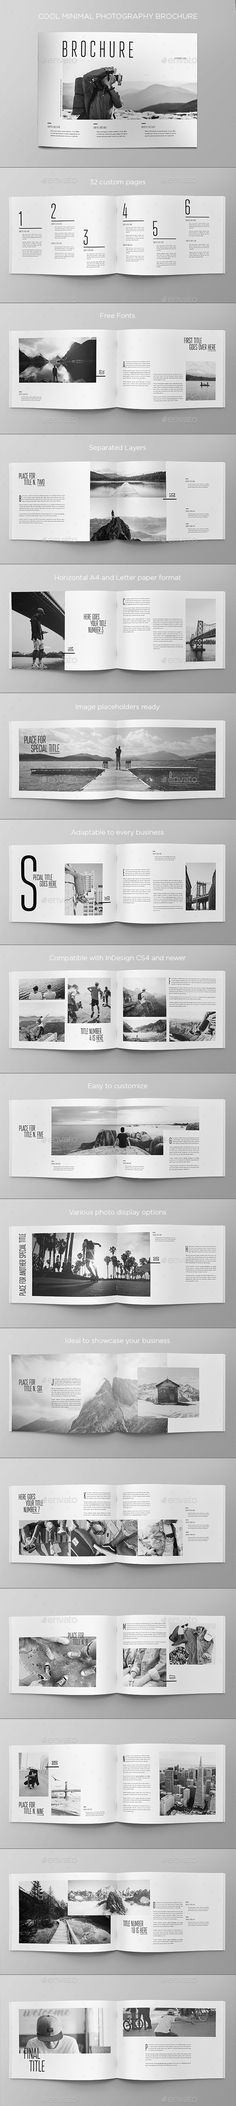 Cool Minimal Photography Brochure — InDesign INDD #business #brochure • Download ➝ https://graphicriver.net/item/cool-minimal-photography-brochure/20106581?ref=pxcr